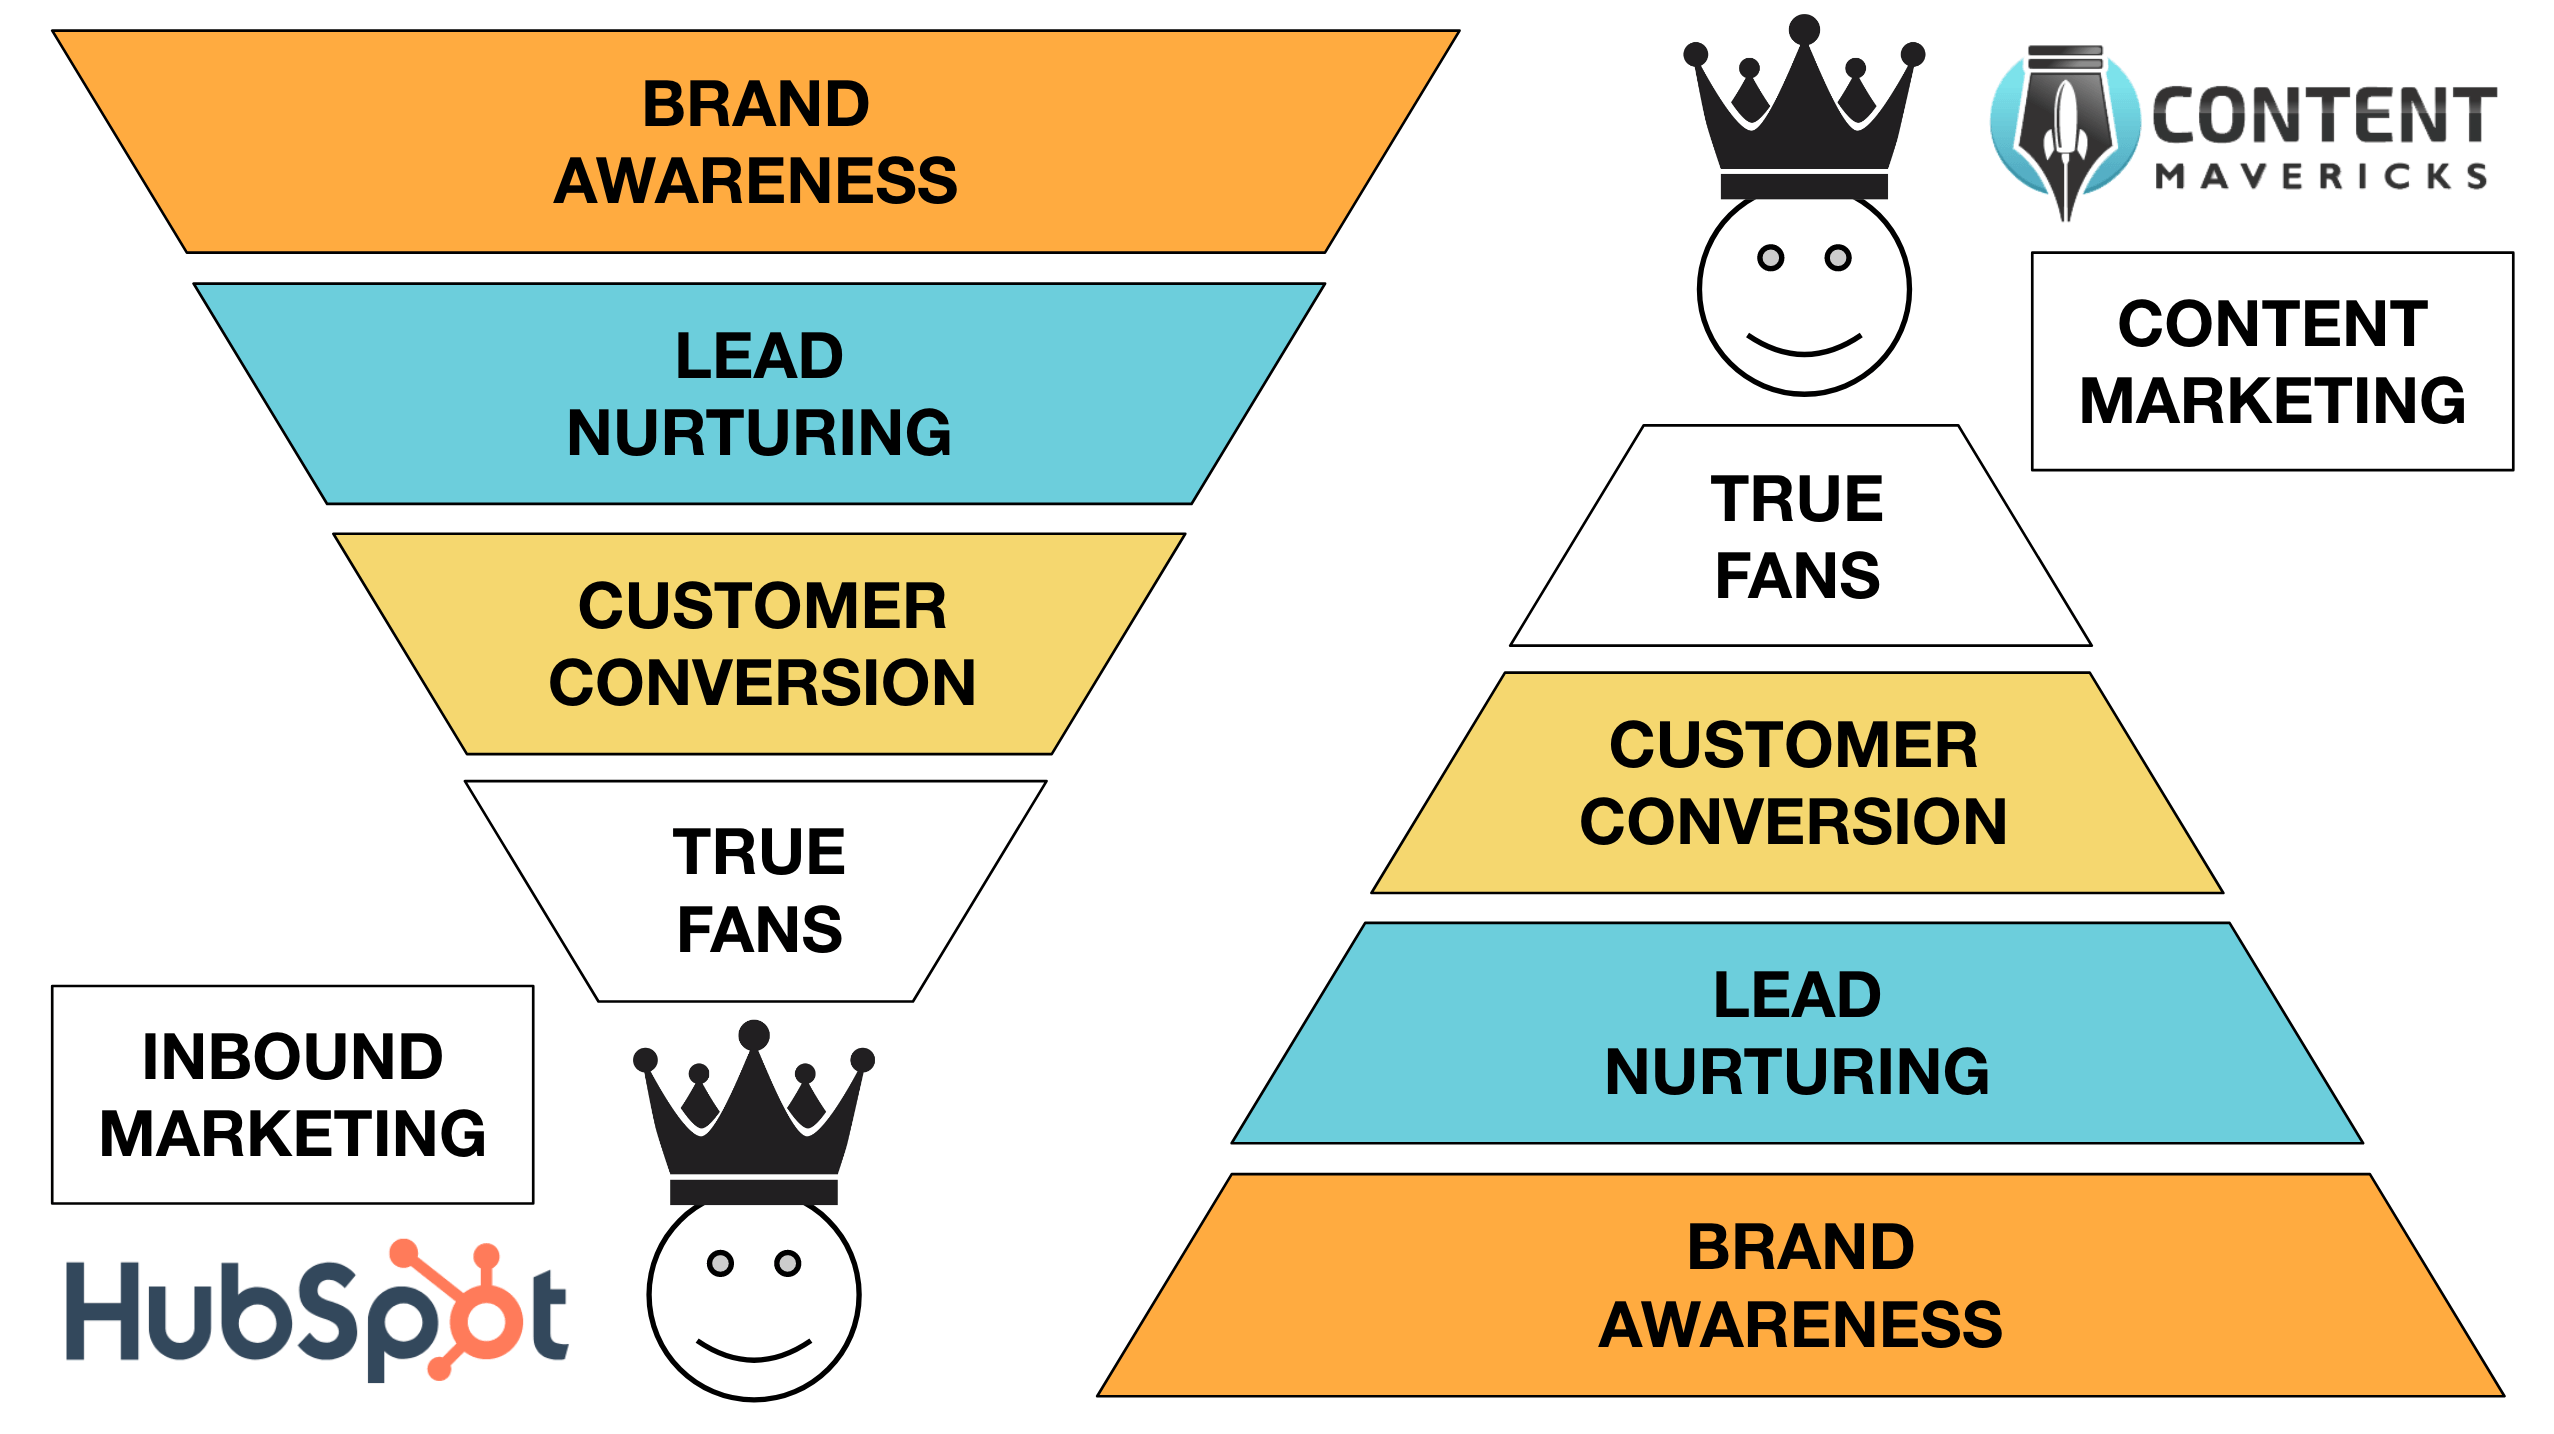 inbound marketing vs content marketing image